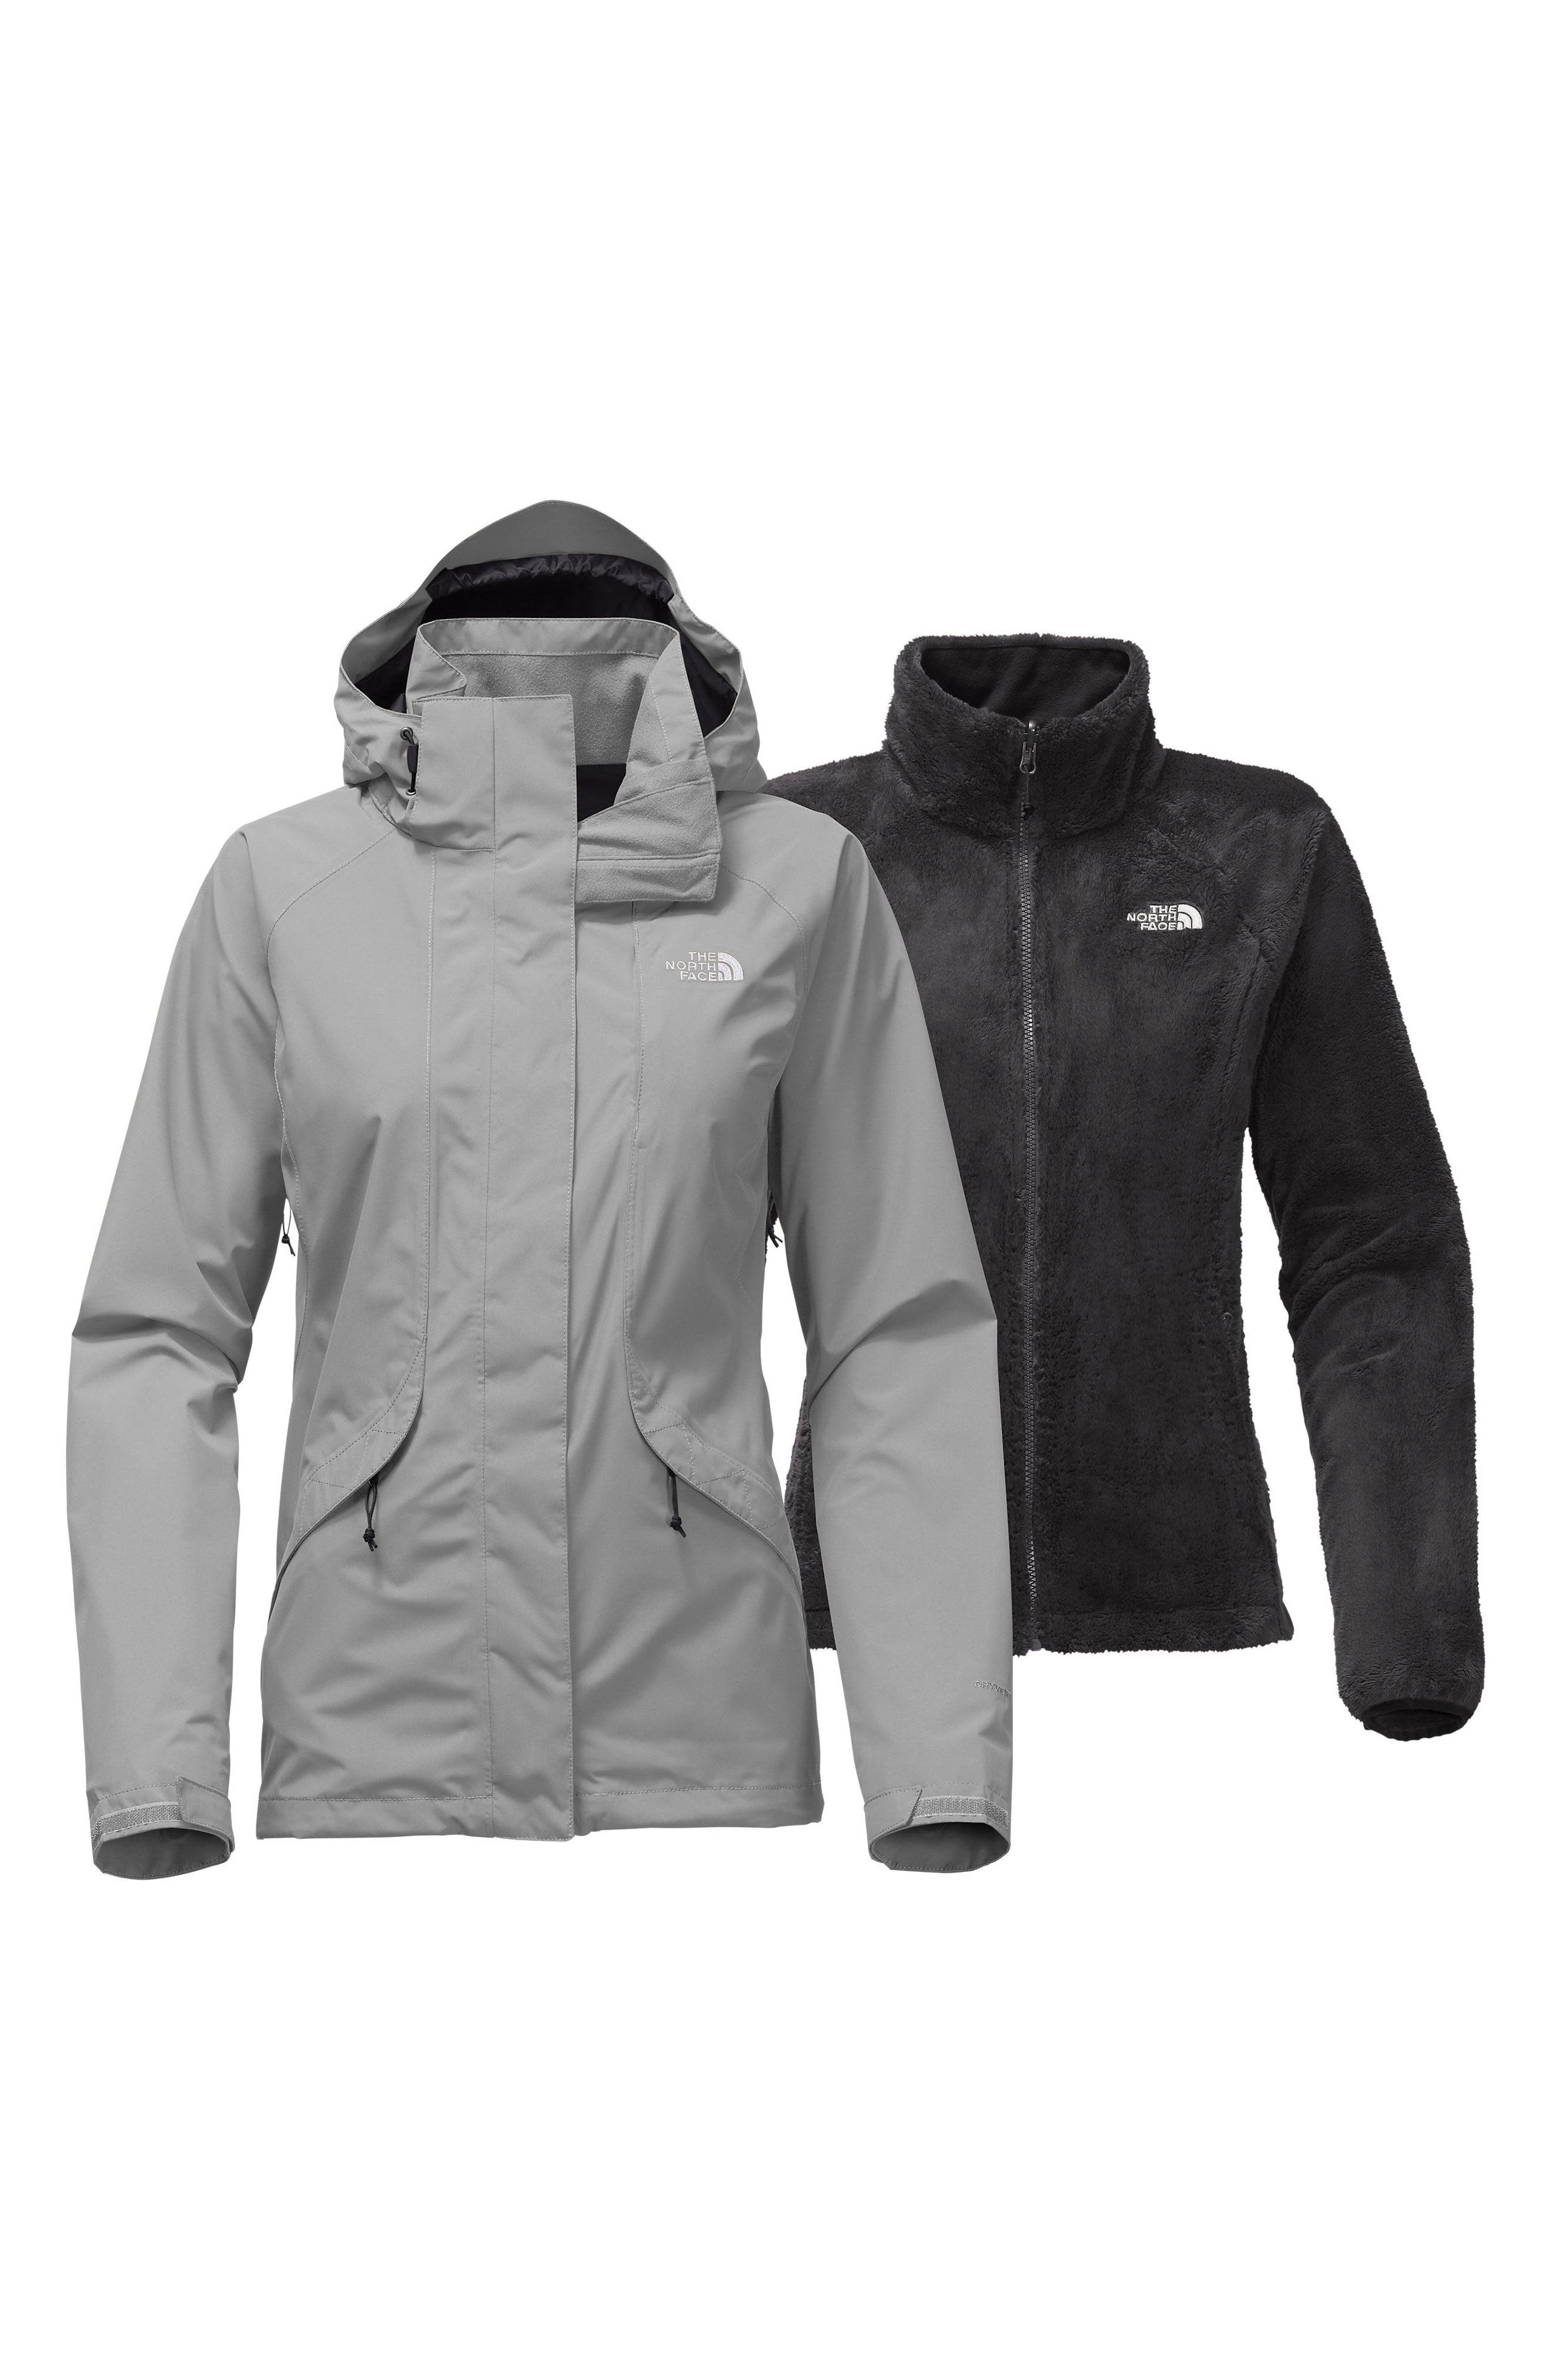 Boundary Triclimate<sup>®</sup> 3-in-1 Jacket,                             Alternate thumbnail 7, color,                             030